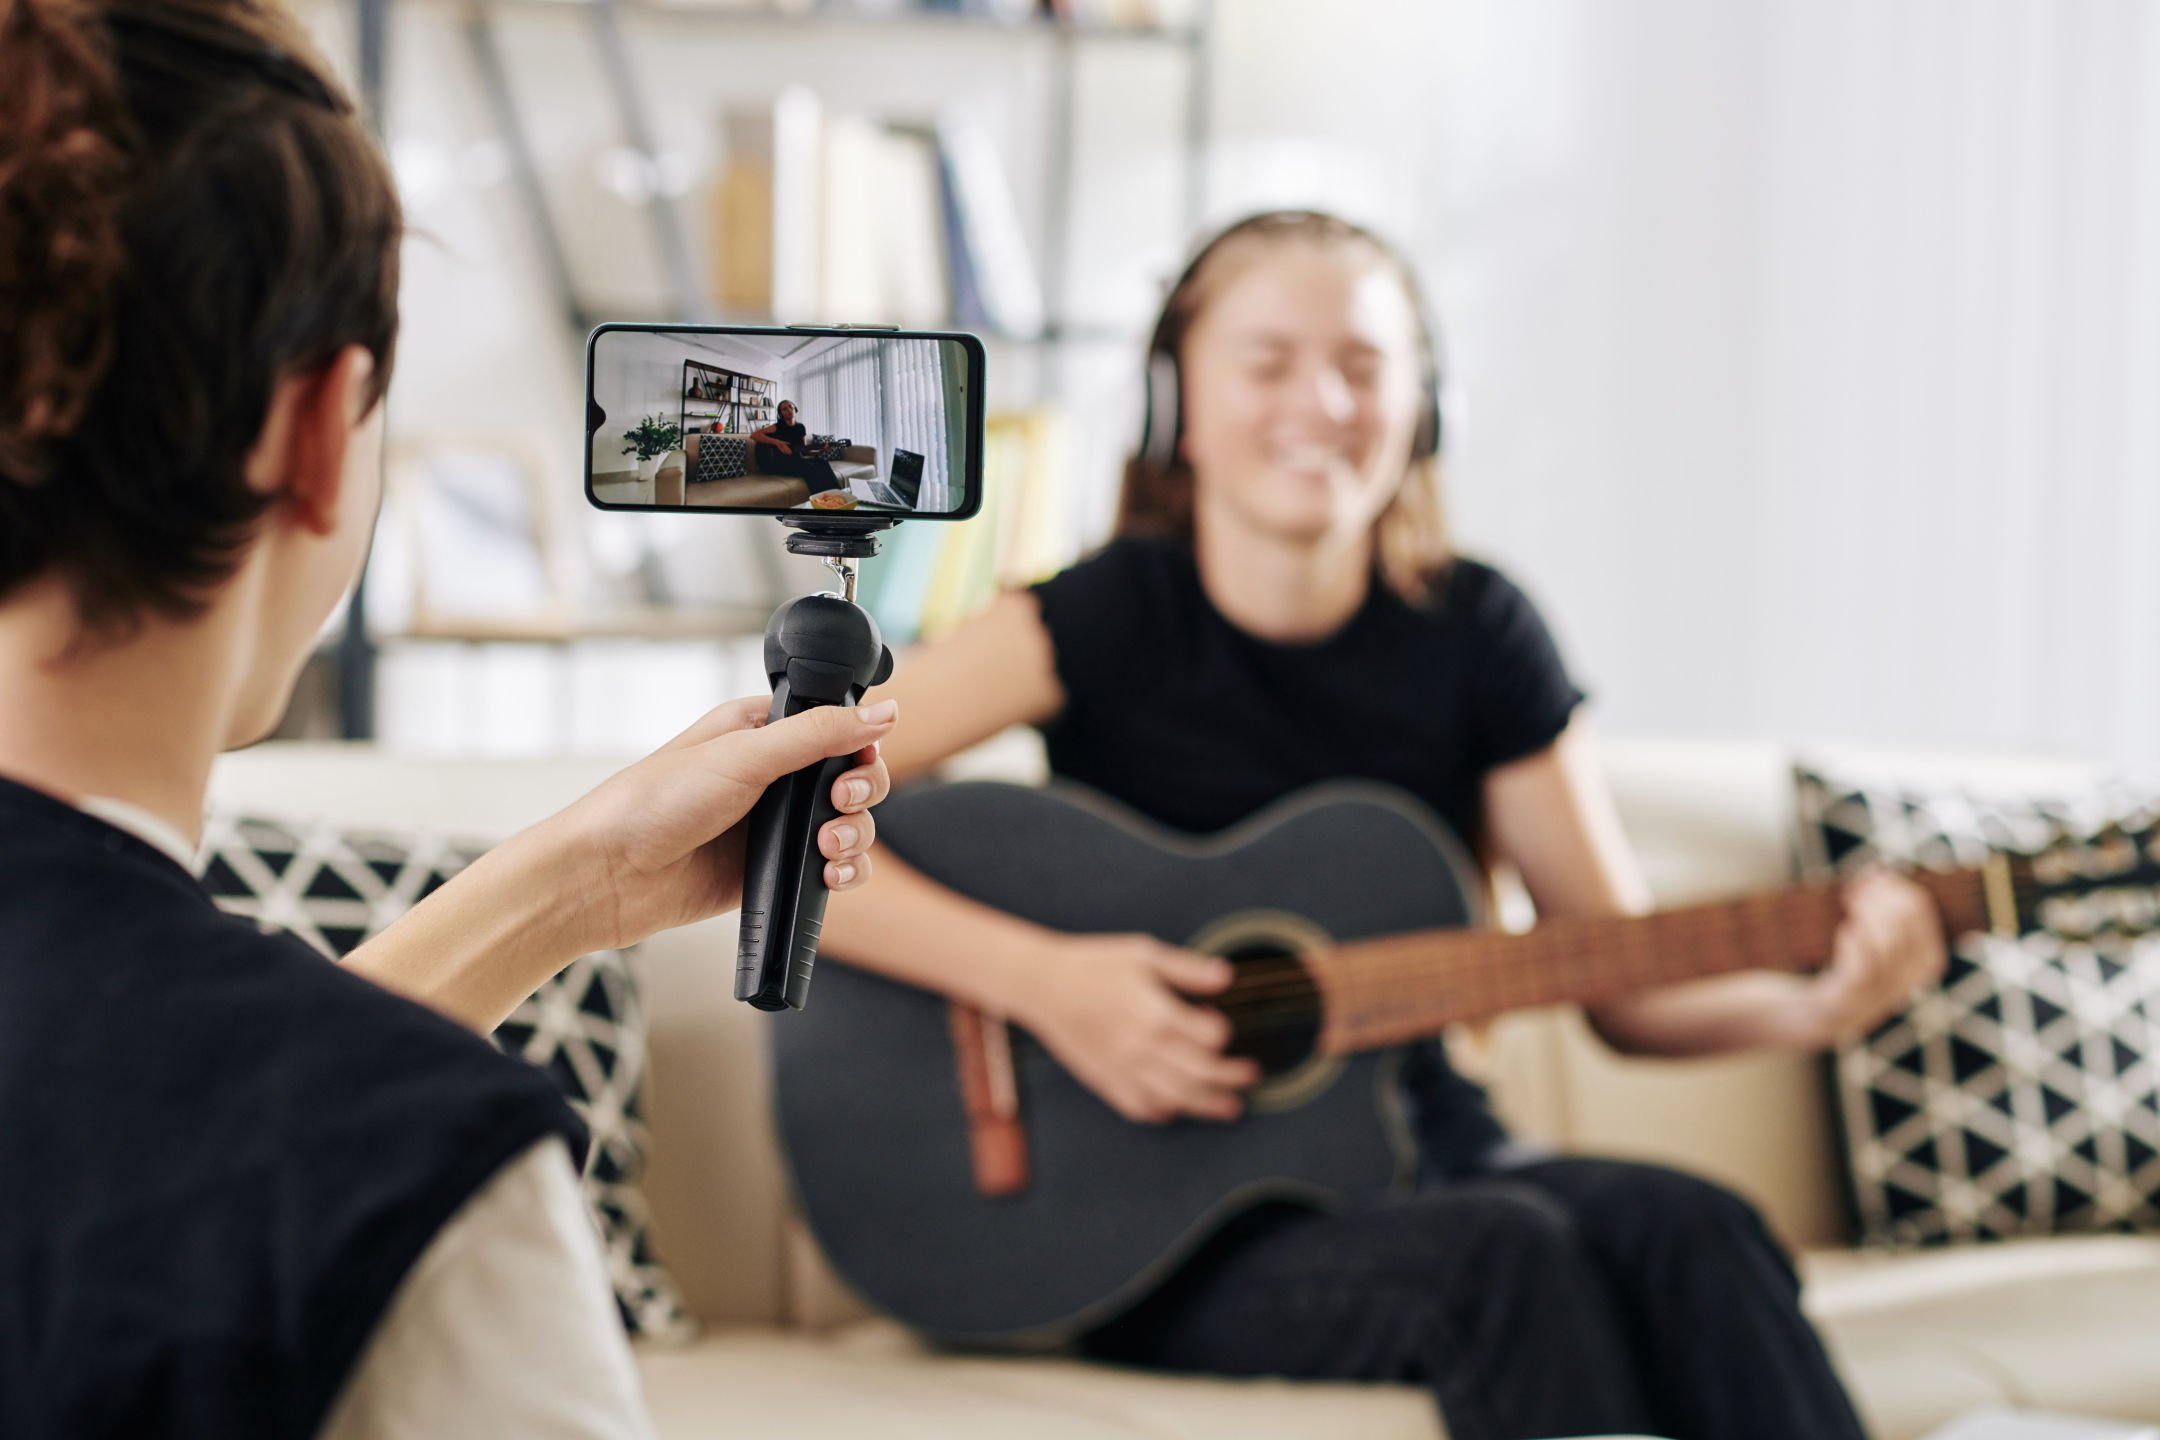 A boy recording a girl playing the guitar at home.